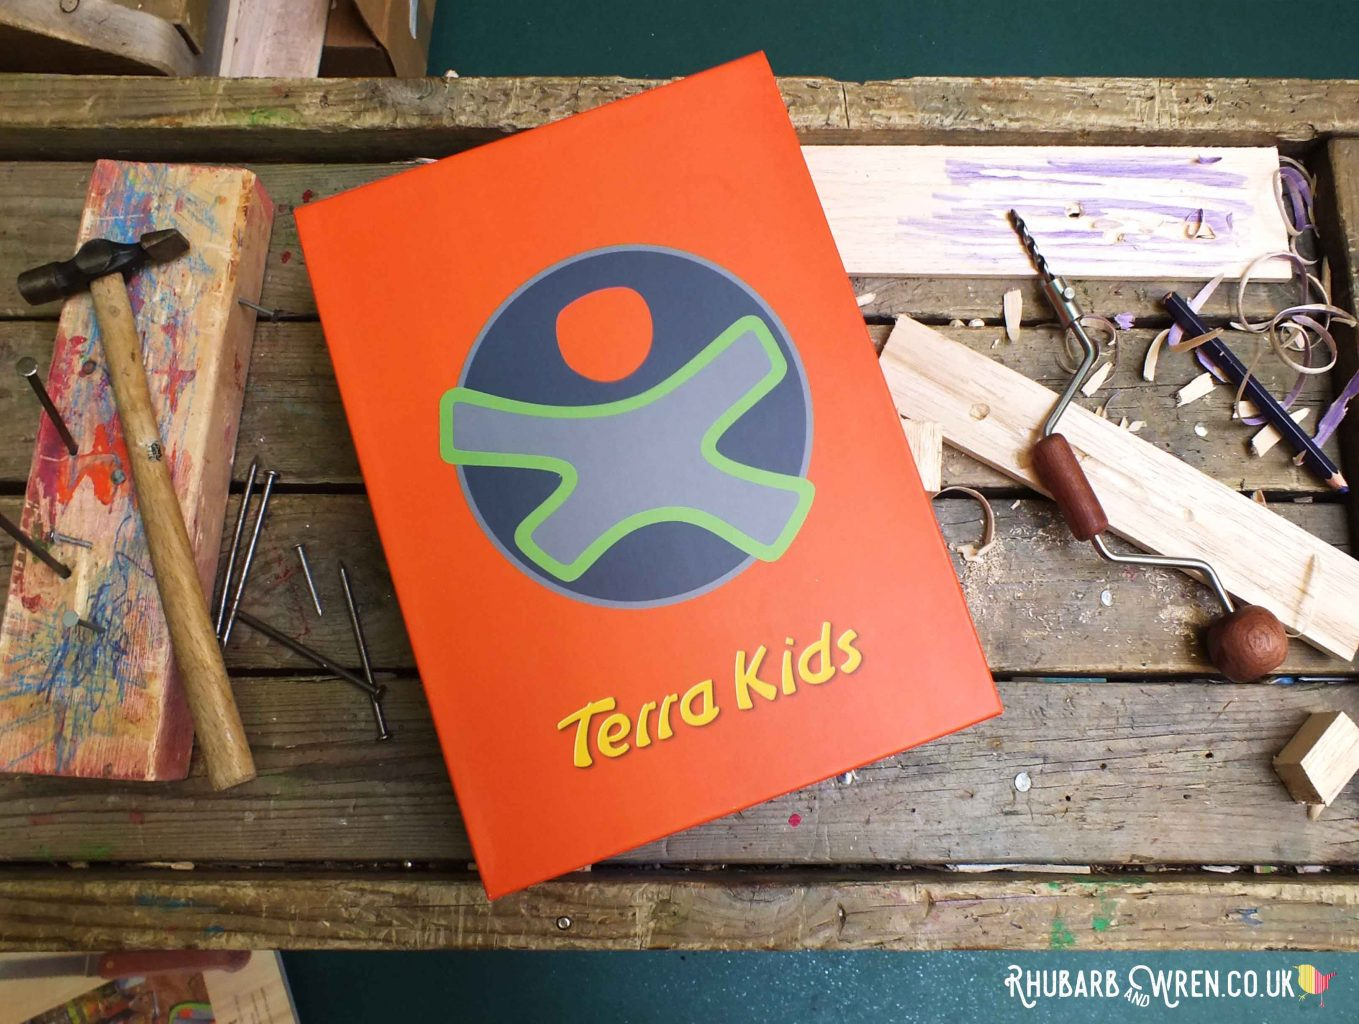 Box of HABA Terra Kids carving gouges - real tools for children